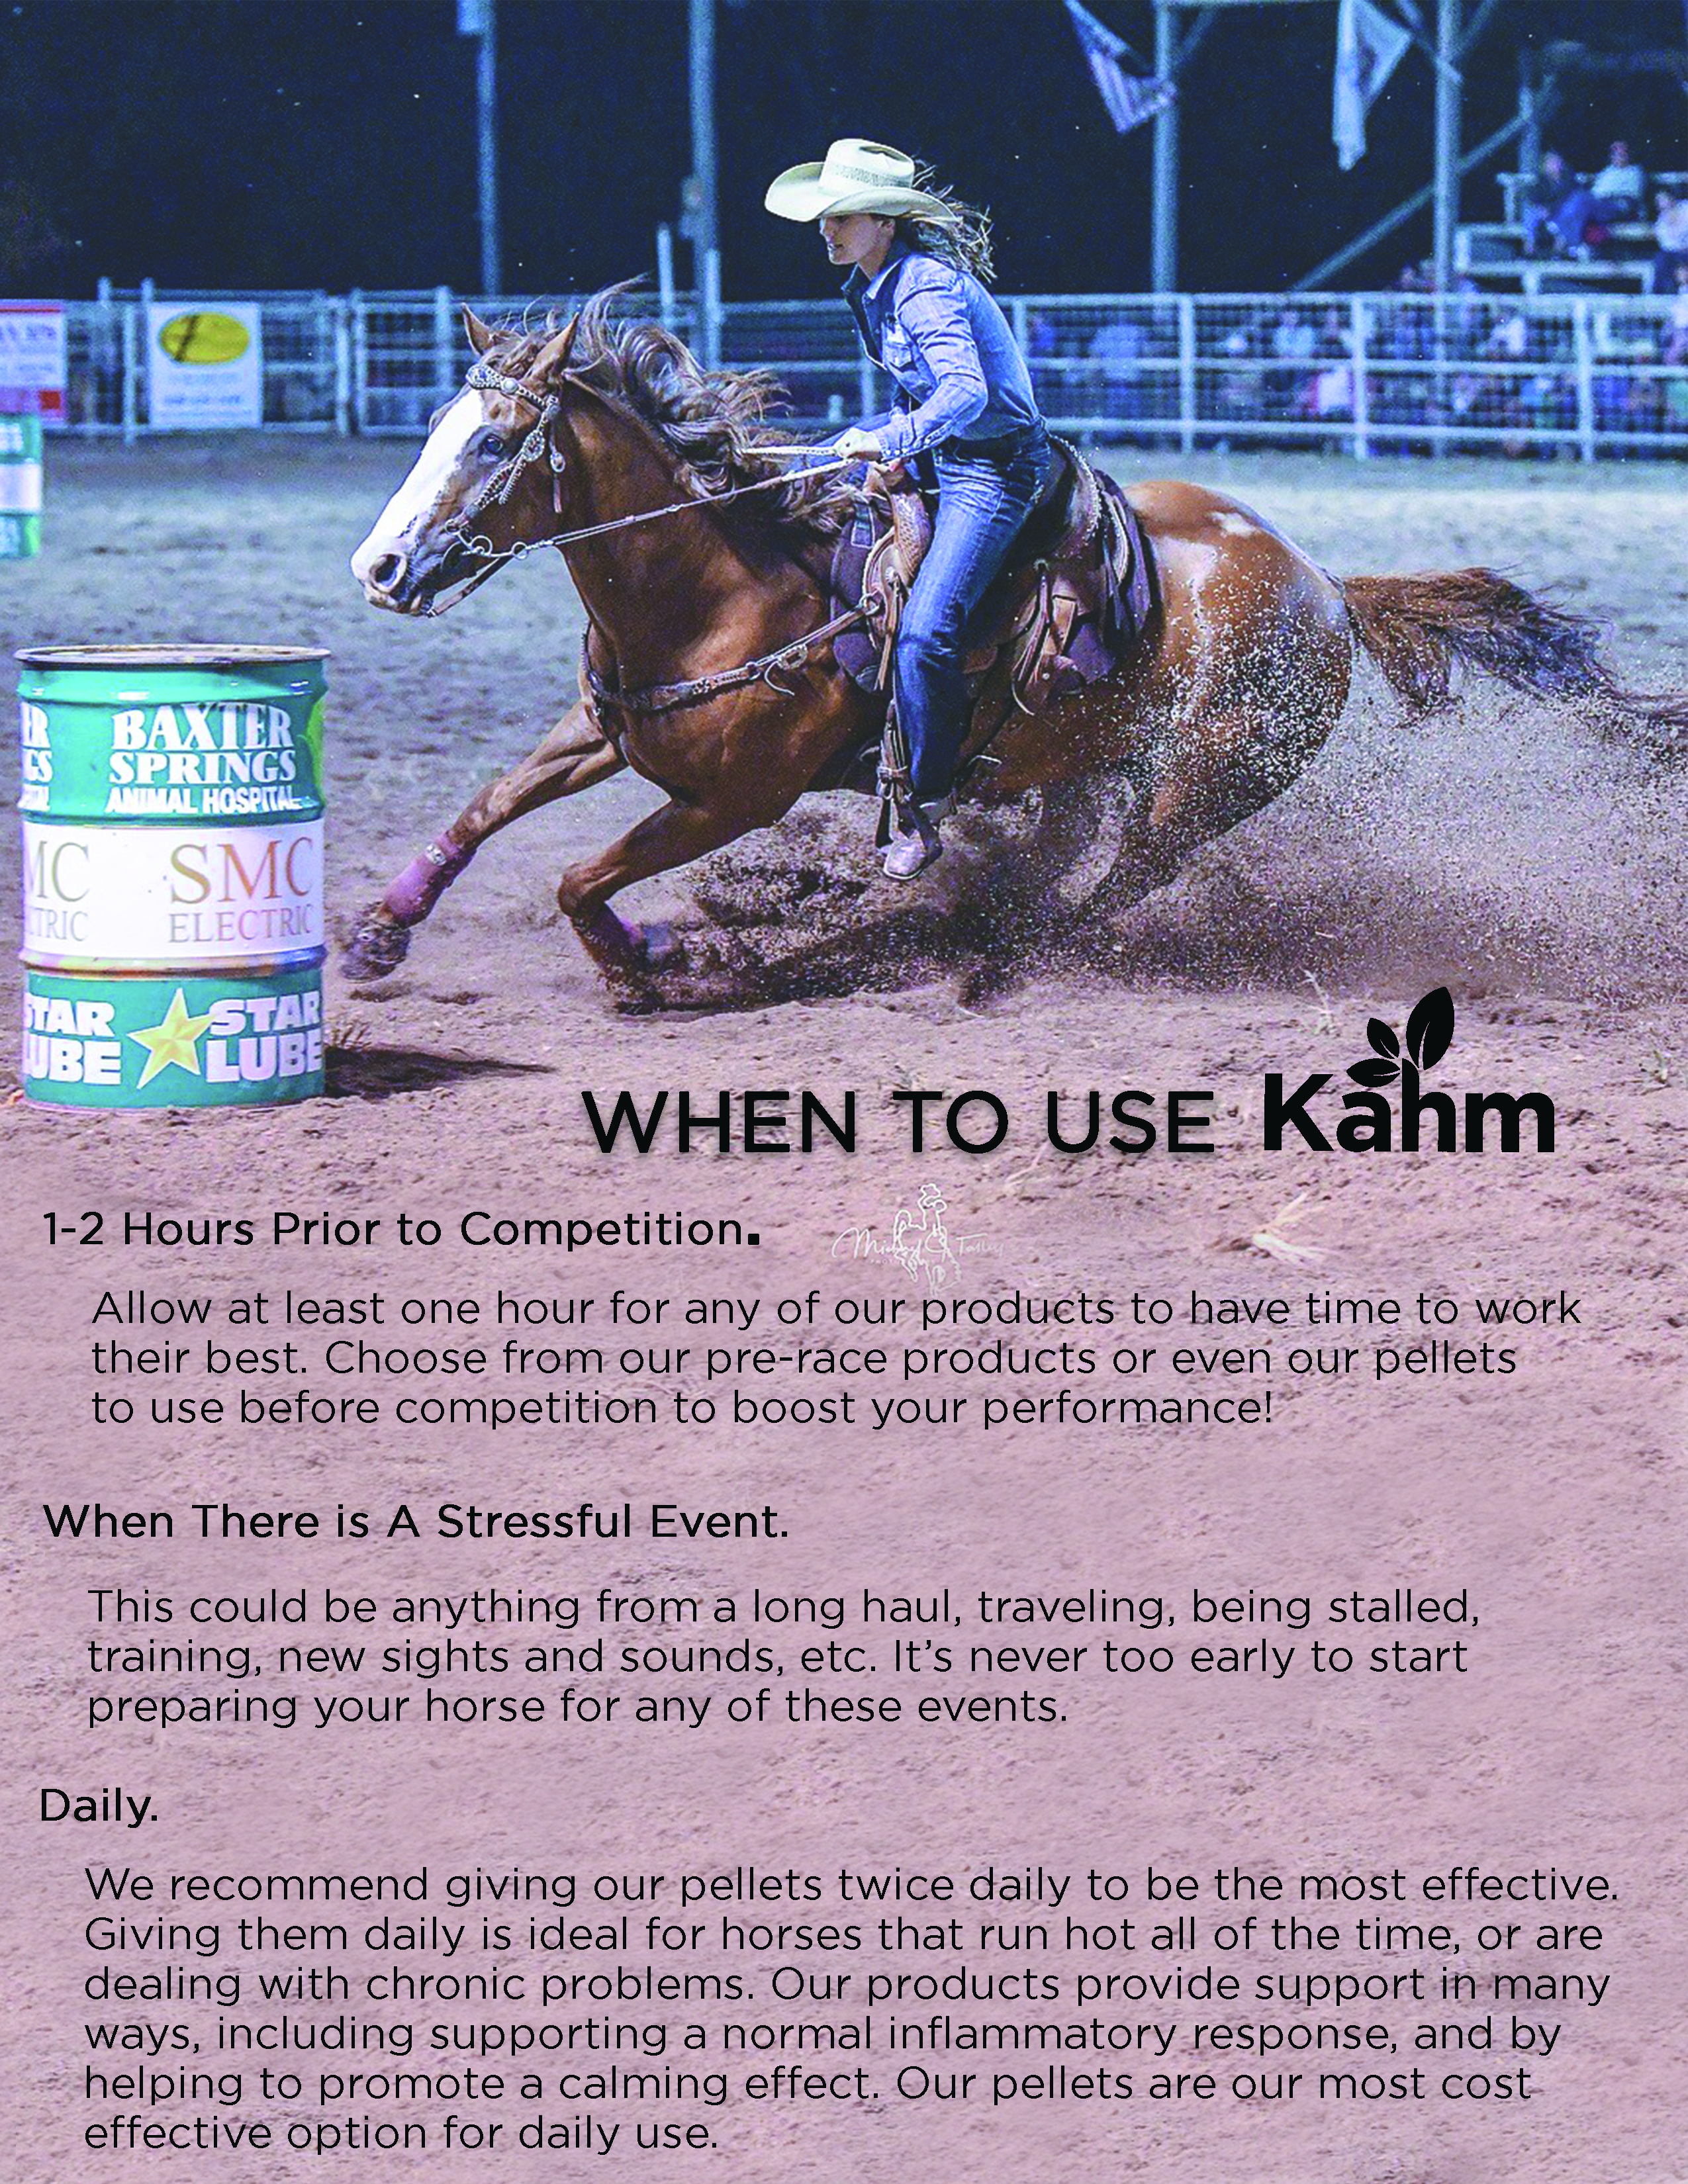 When to Use Kahm